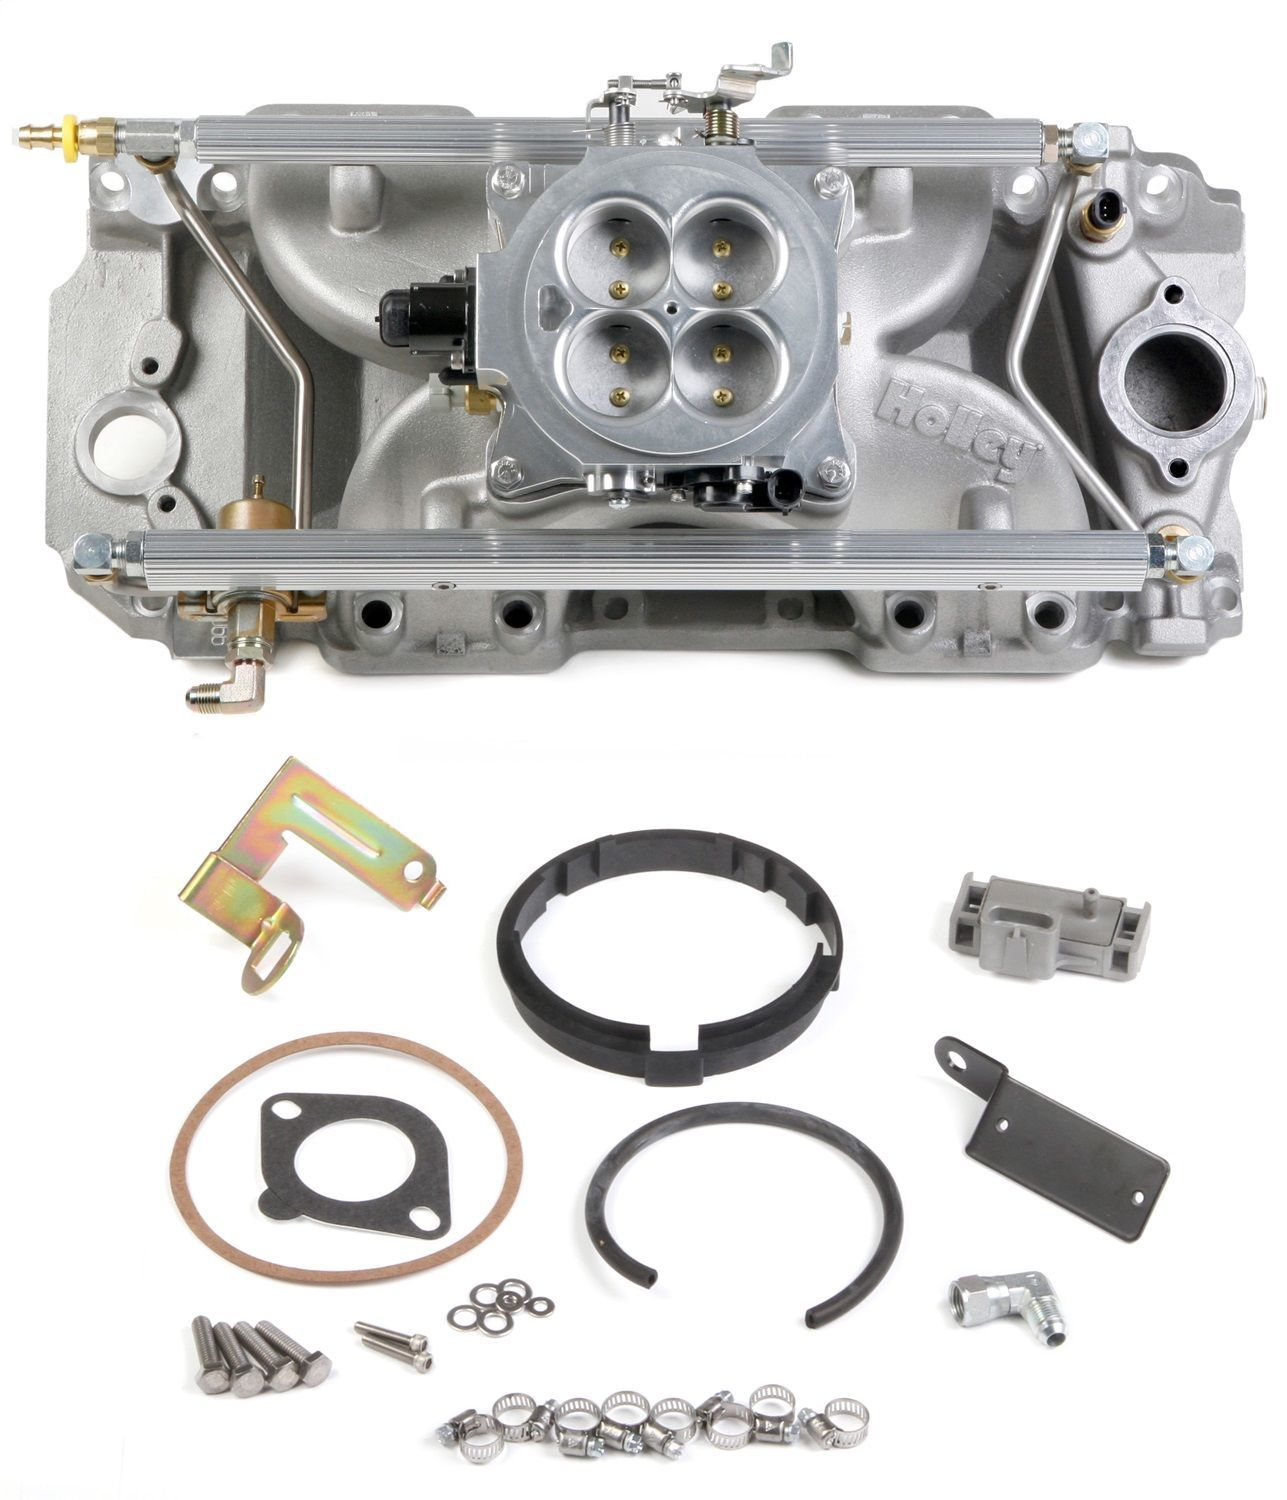 HOLLEY EFI - Power Pack Multi-Point Fuel Injection System Kit - HLE 550-702